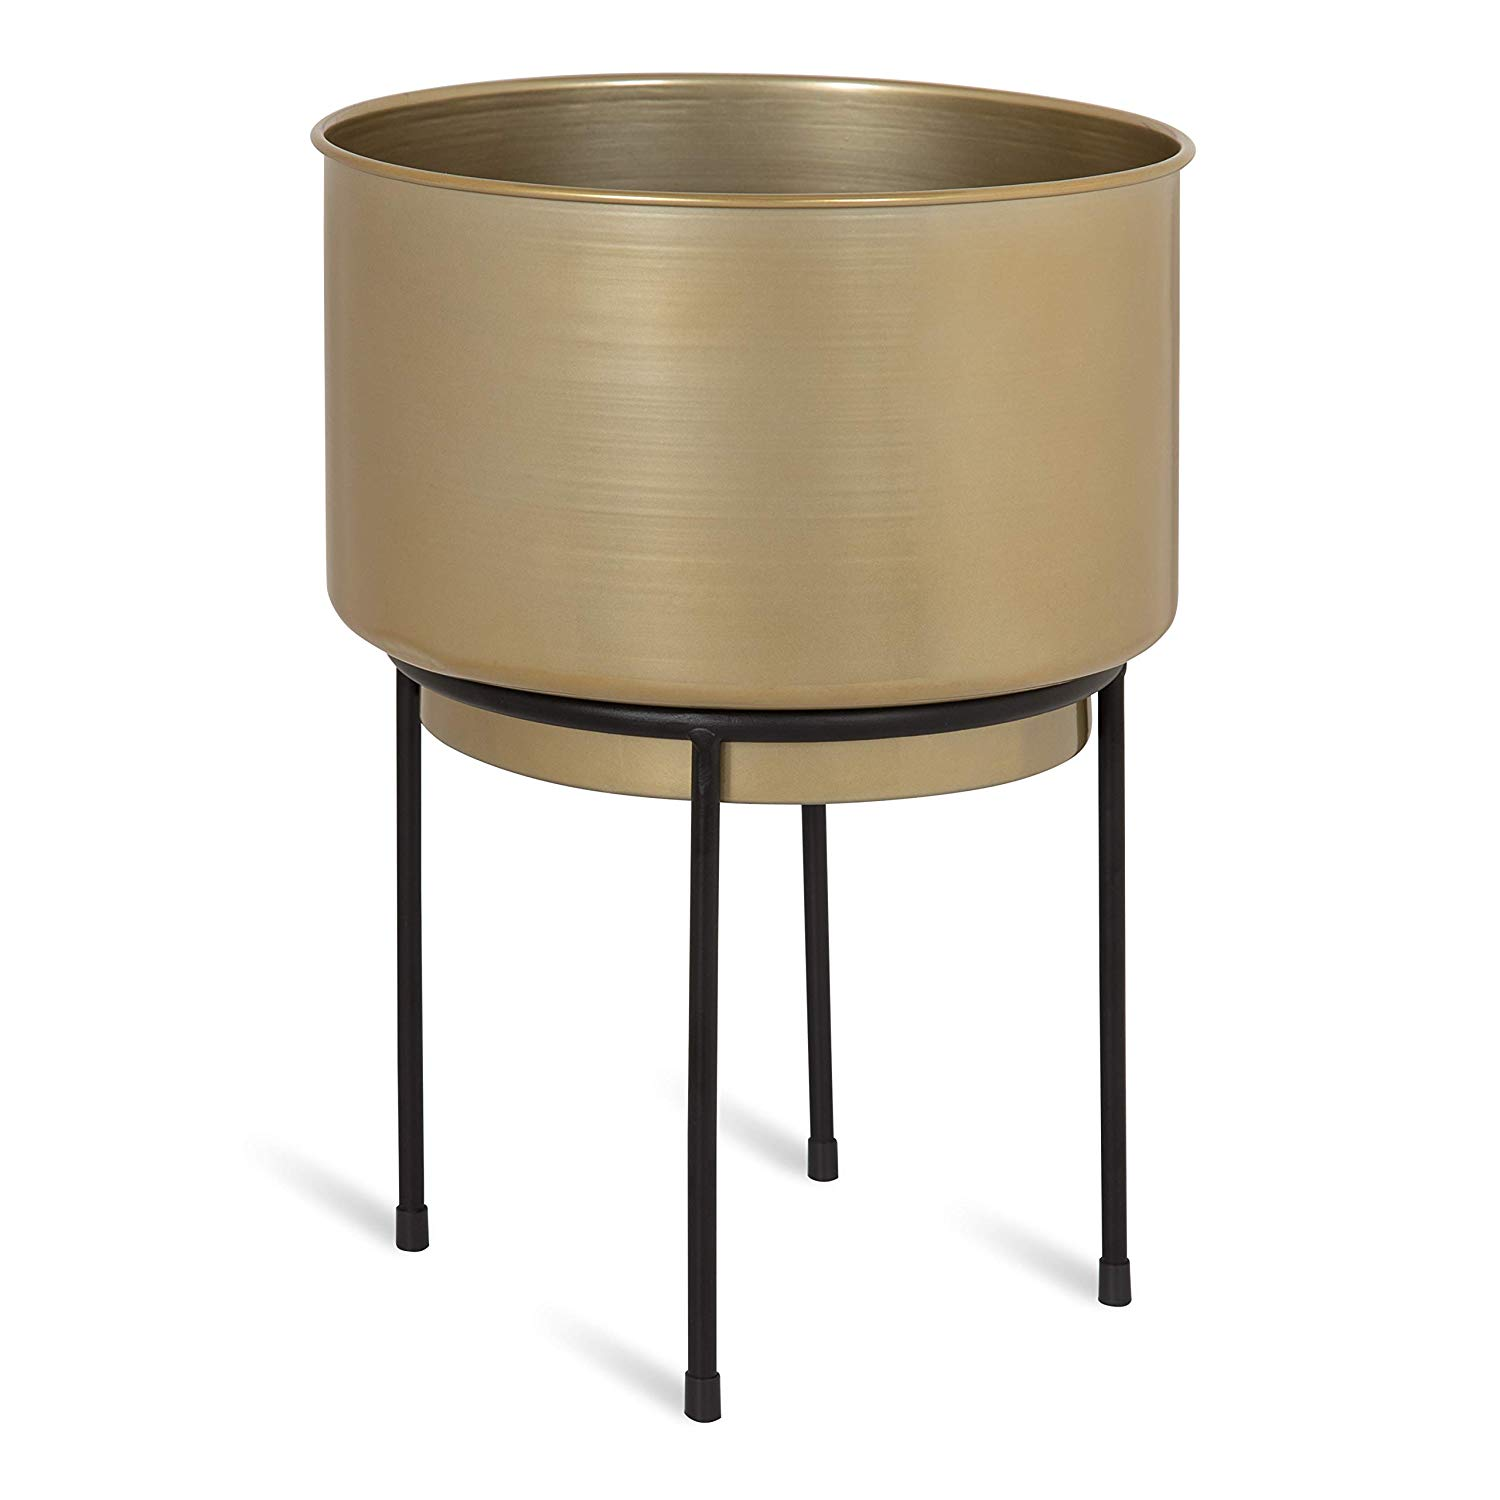 Kate and Laurel Indya Indoor Decorative Metal Planter with 10-Inch Round Gold Pot and Black Metal Framework Stand